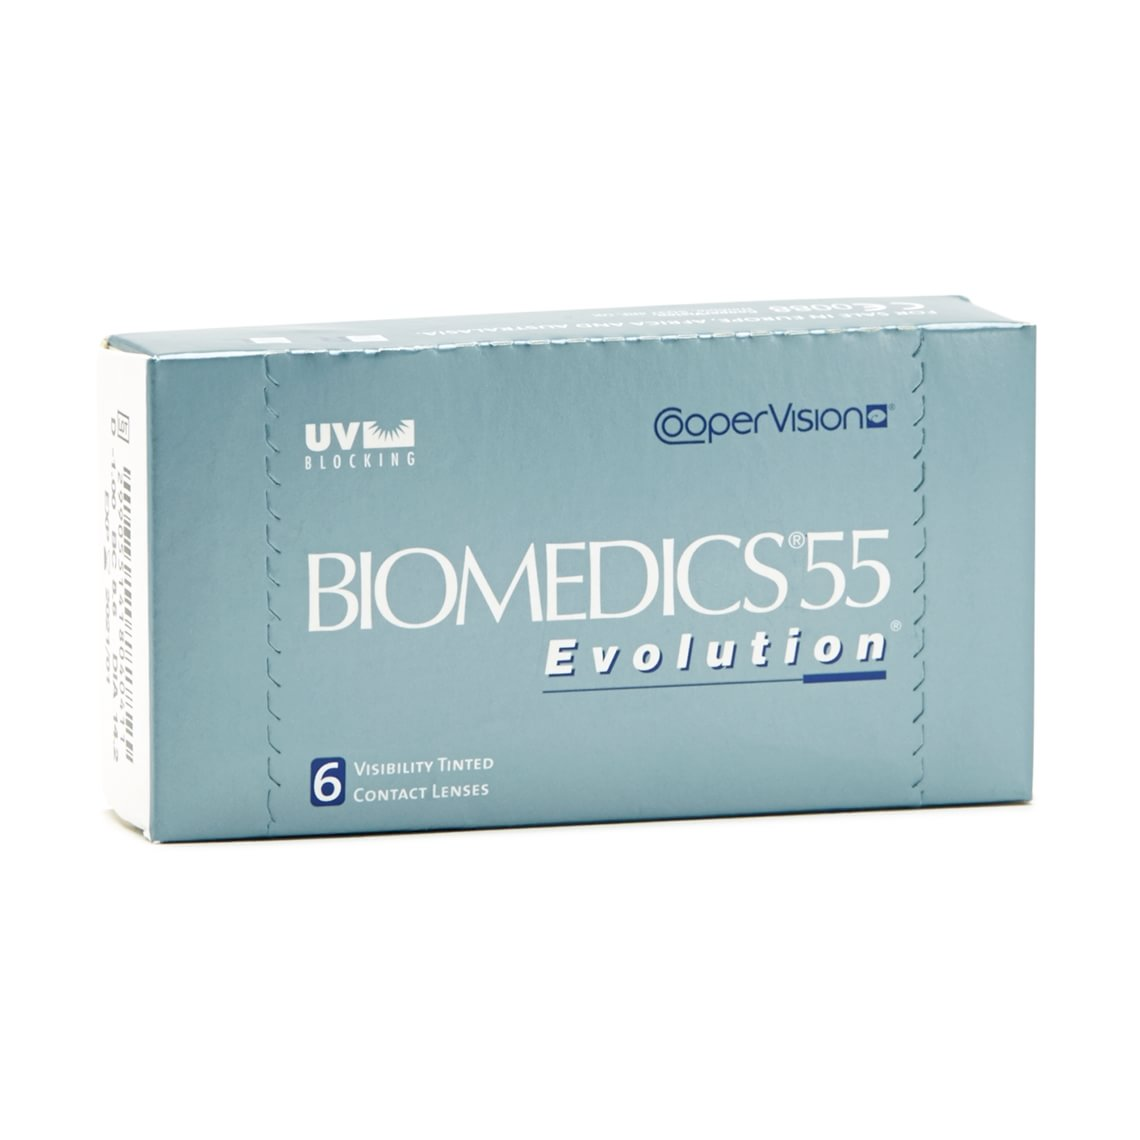 Biomedics 55 Evolution 6 stk/pk